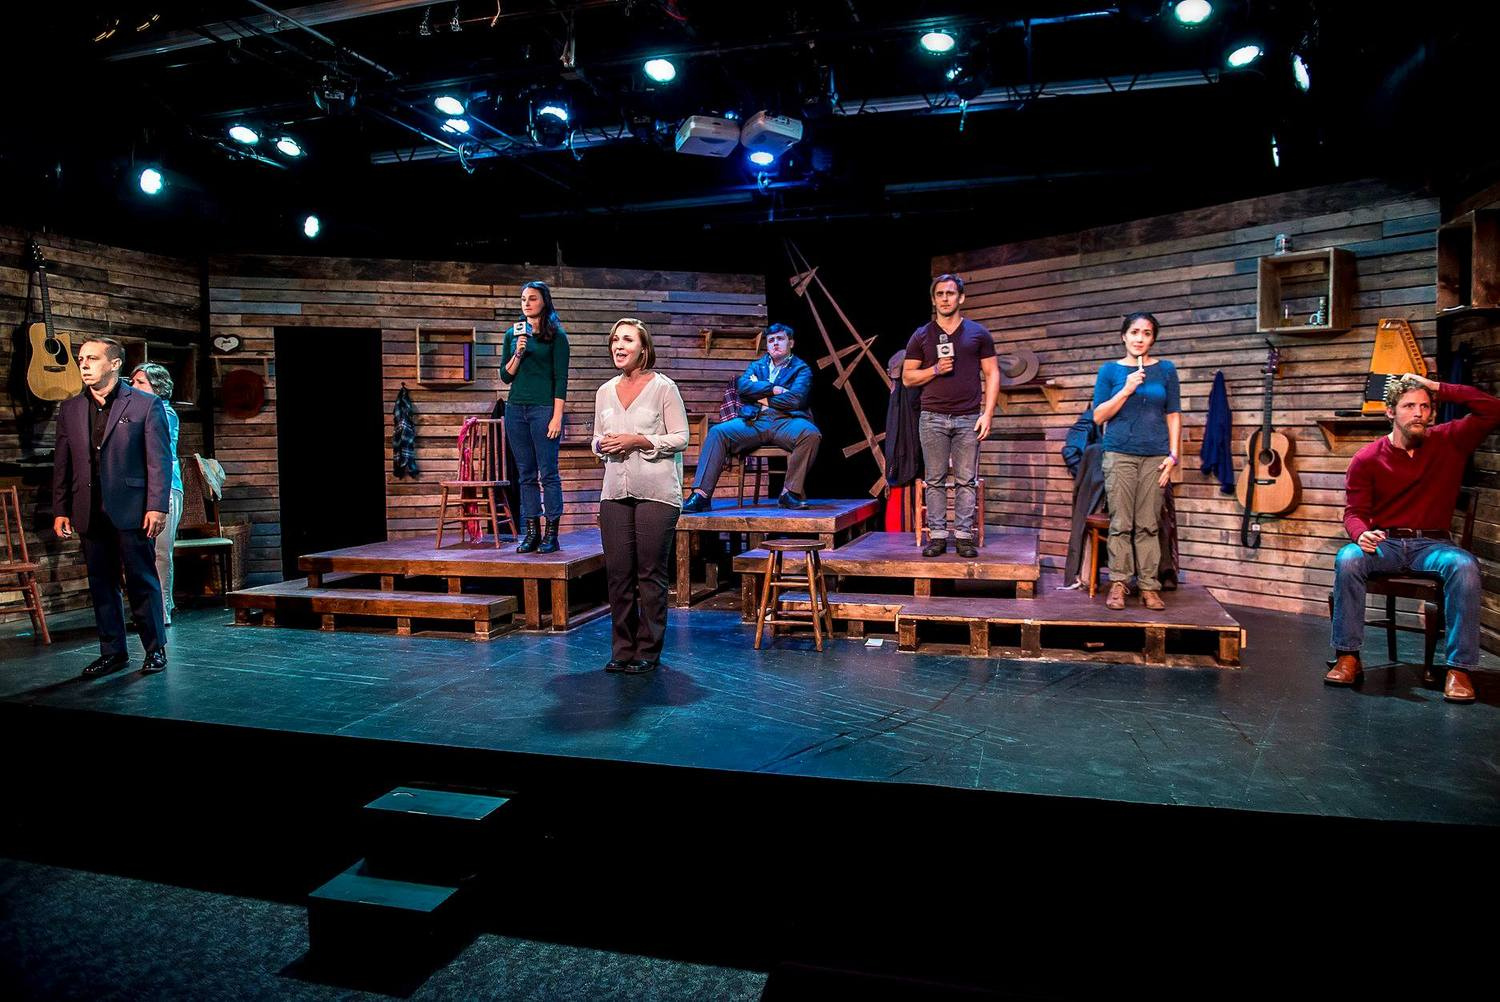 BWW Review: THE LARAMIE PROJECT at Richmond Triangle Players